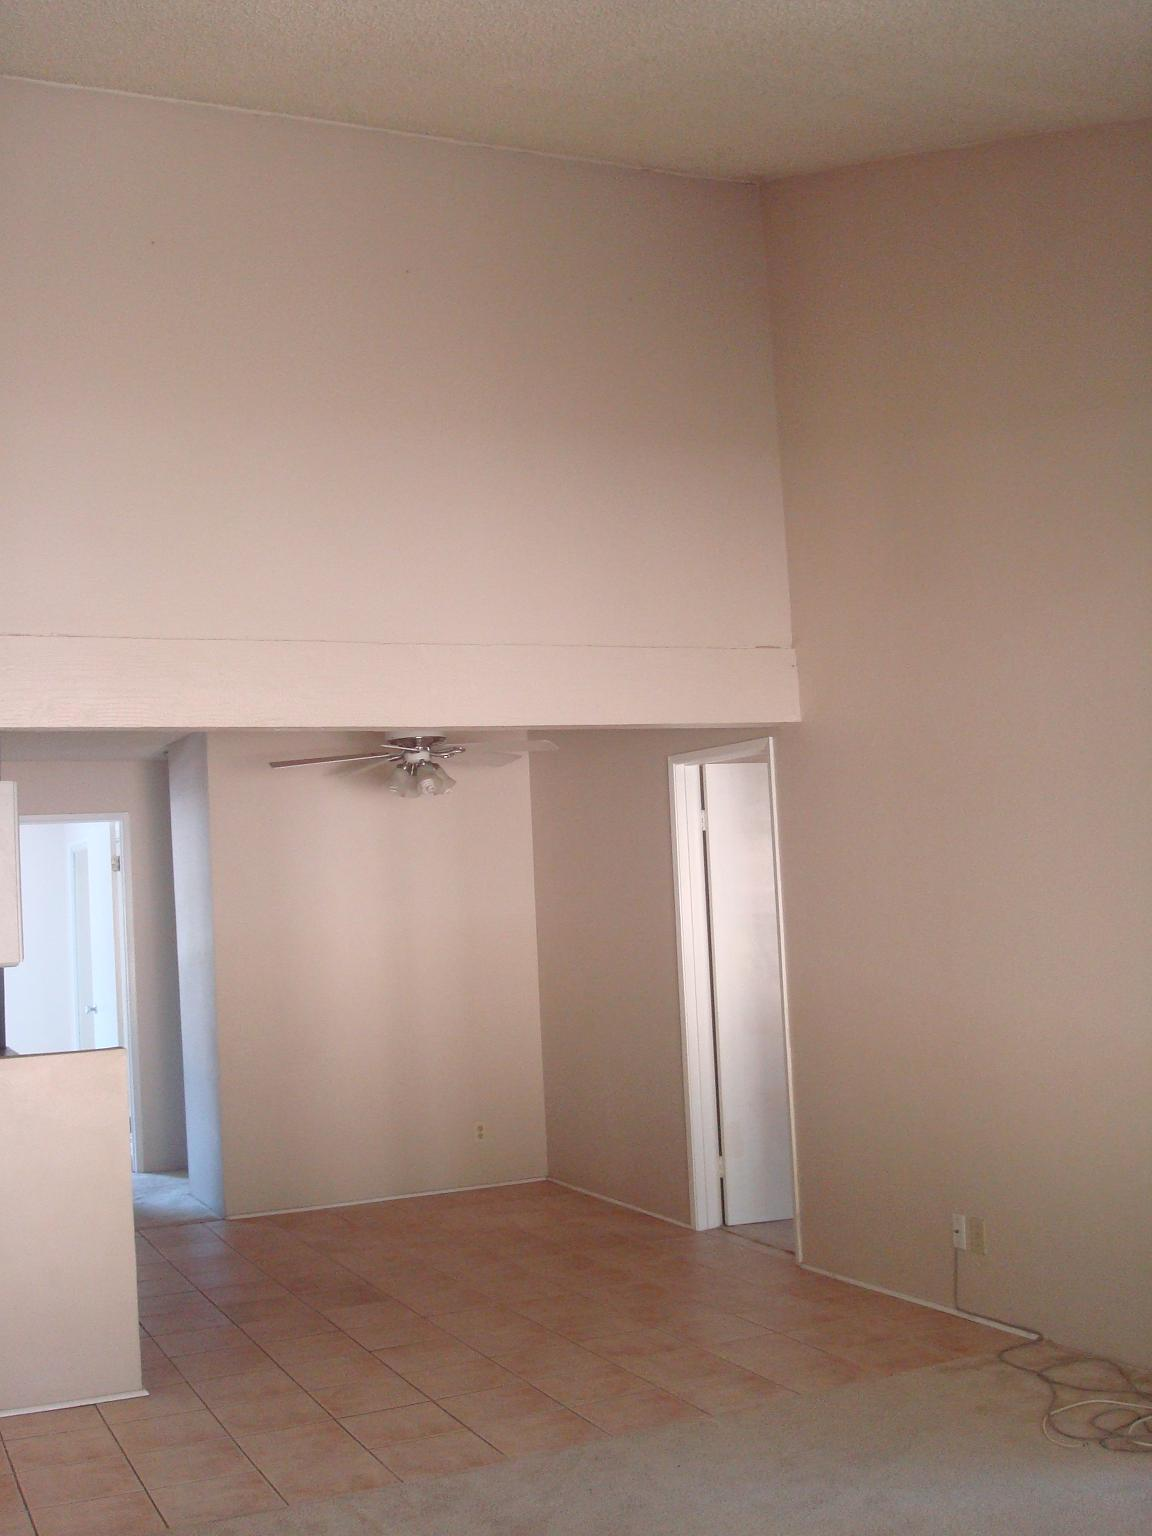 Condo for Rent in Agoura Hills